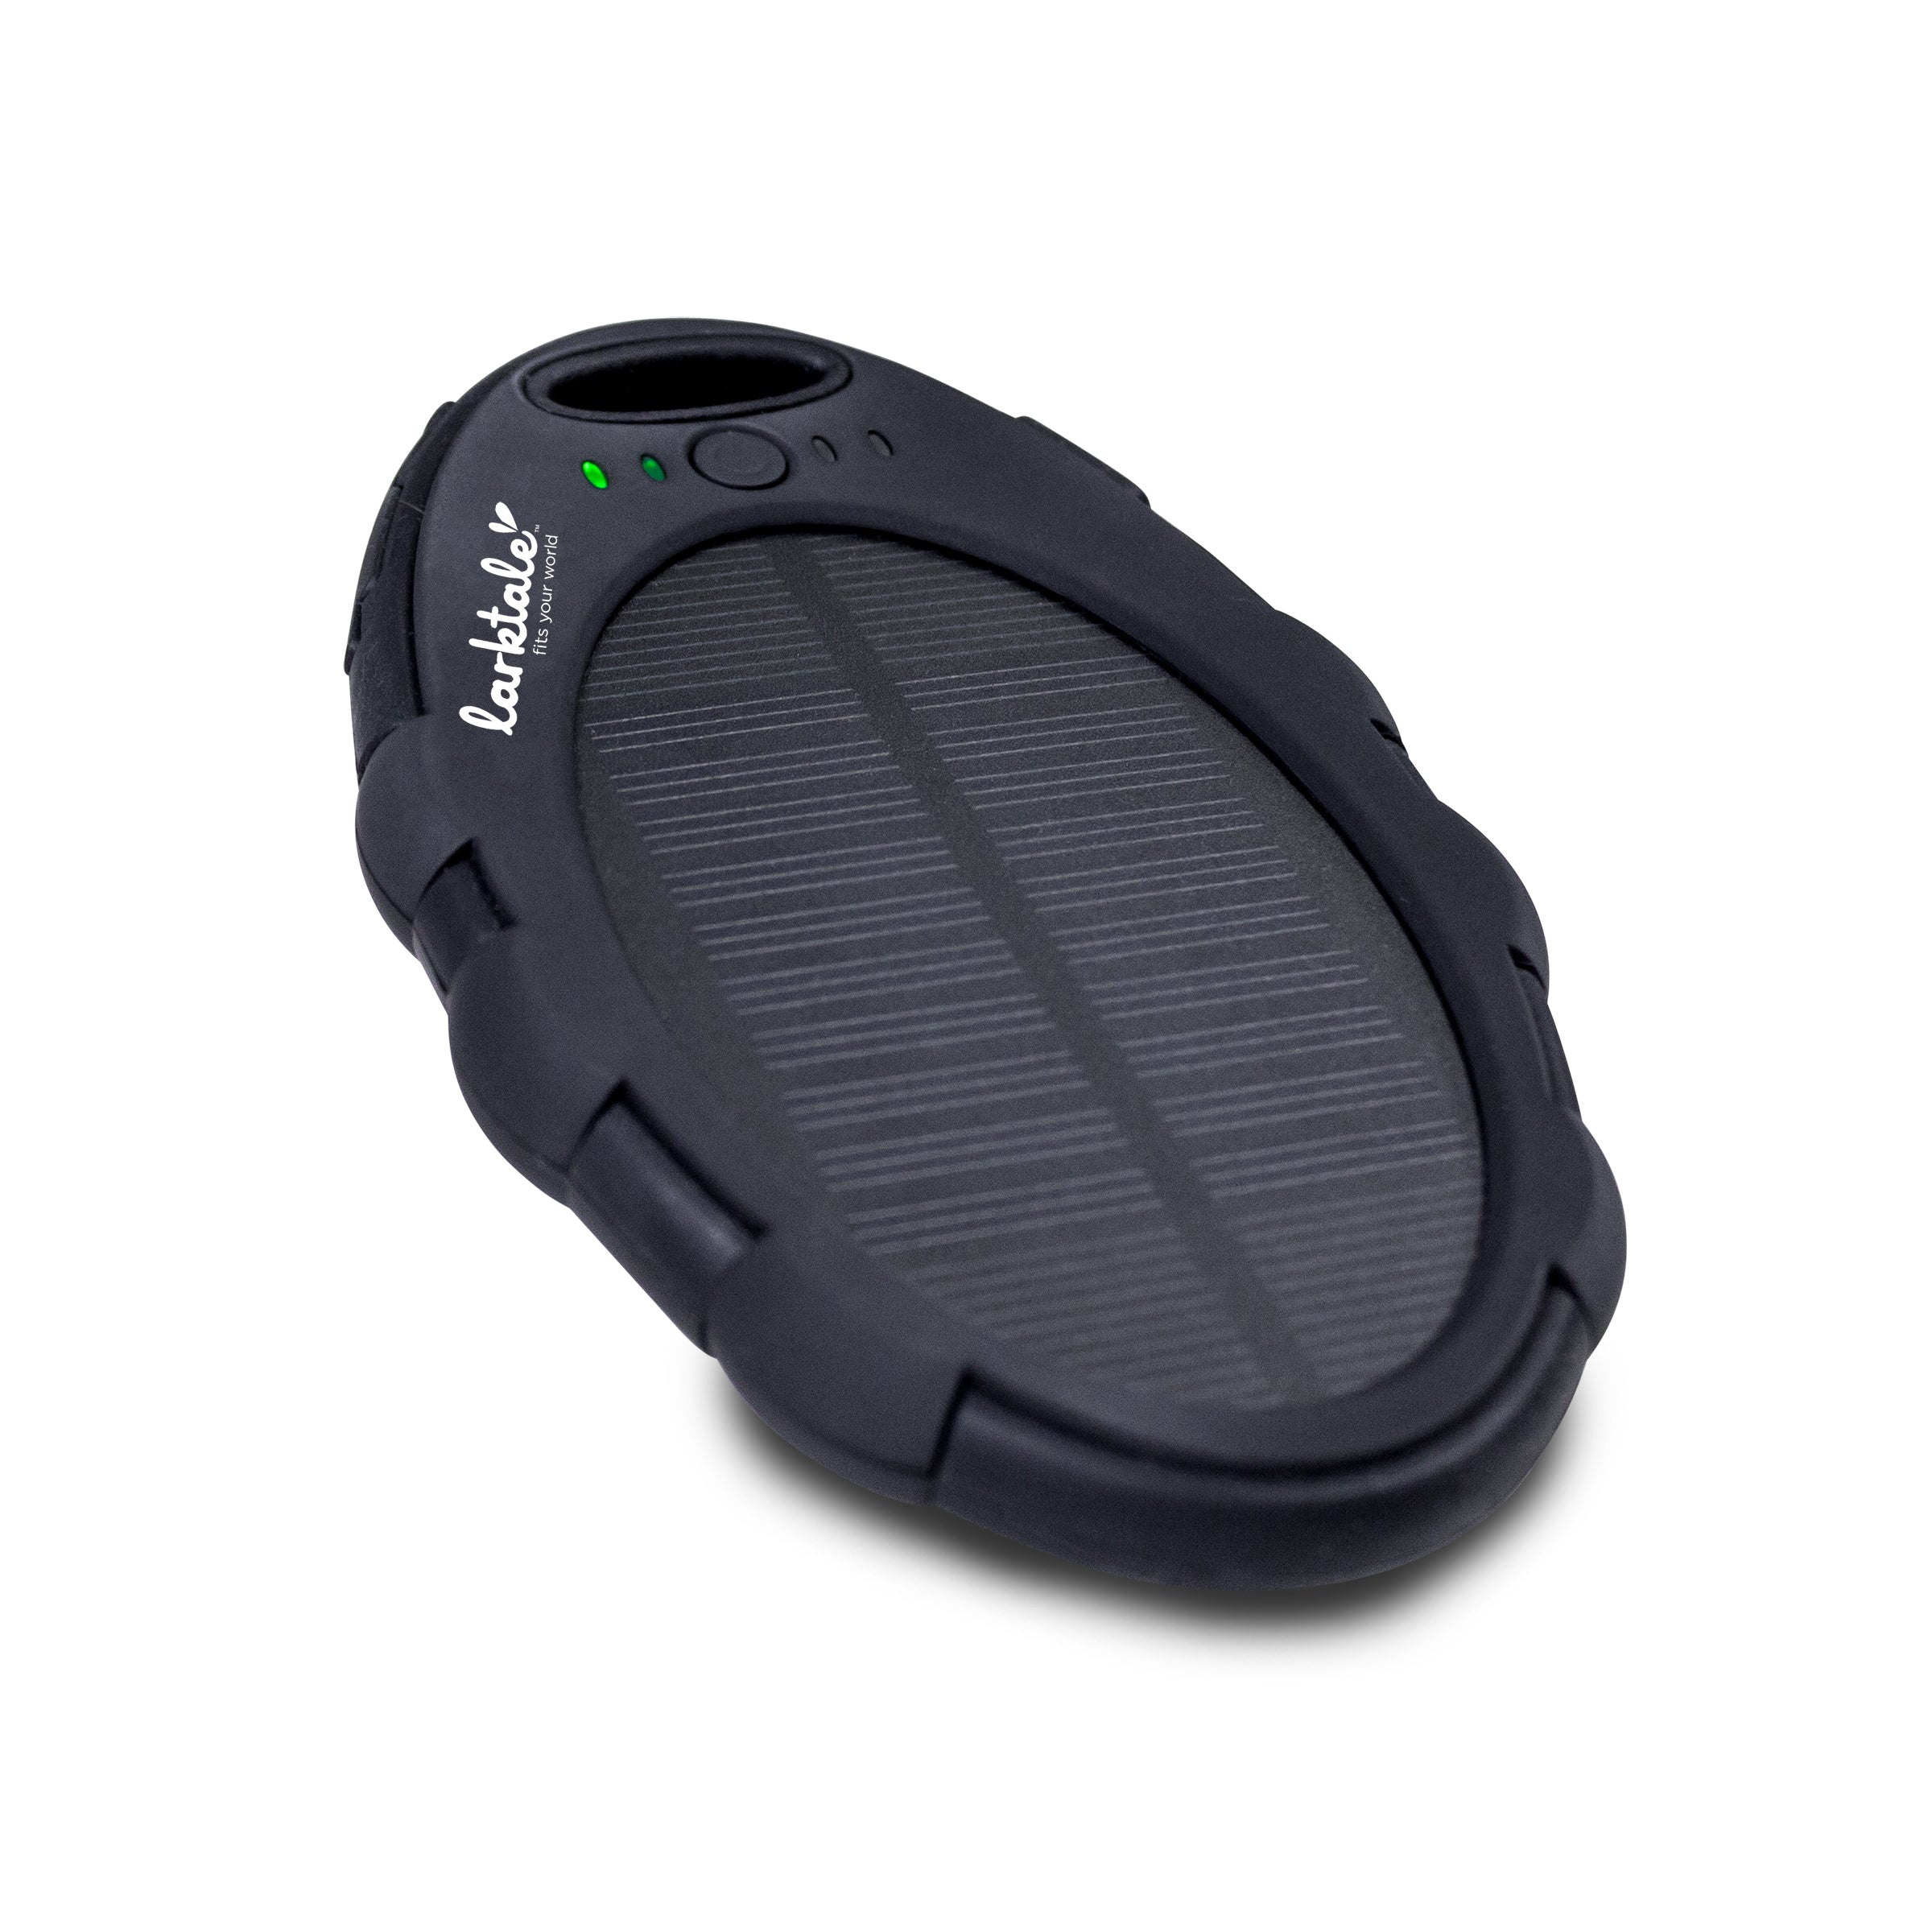 Universal fit! Use the sun's energy to charge your devices. Larktale Solar Charger. Great for travel! An outdoor adventure must-have! Use the solar panel on strollers, wheelchairs, boats, golf carts, purses, diaper bags, backpacks and more!